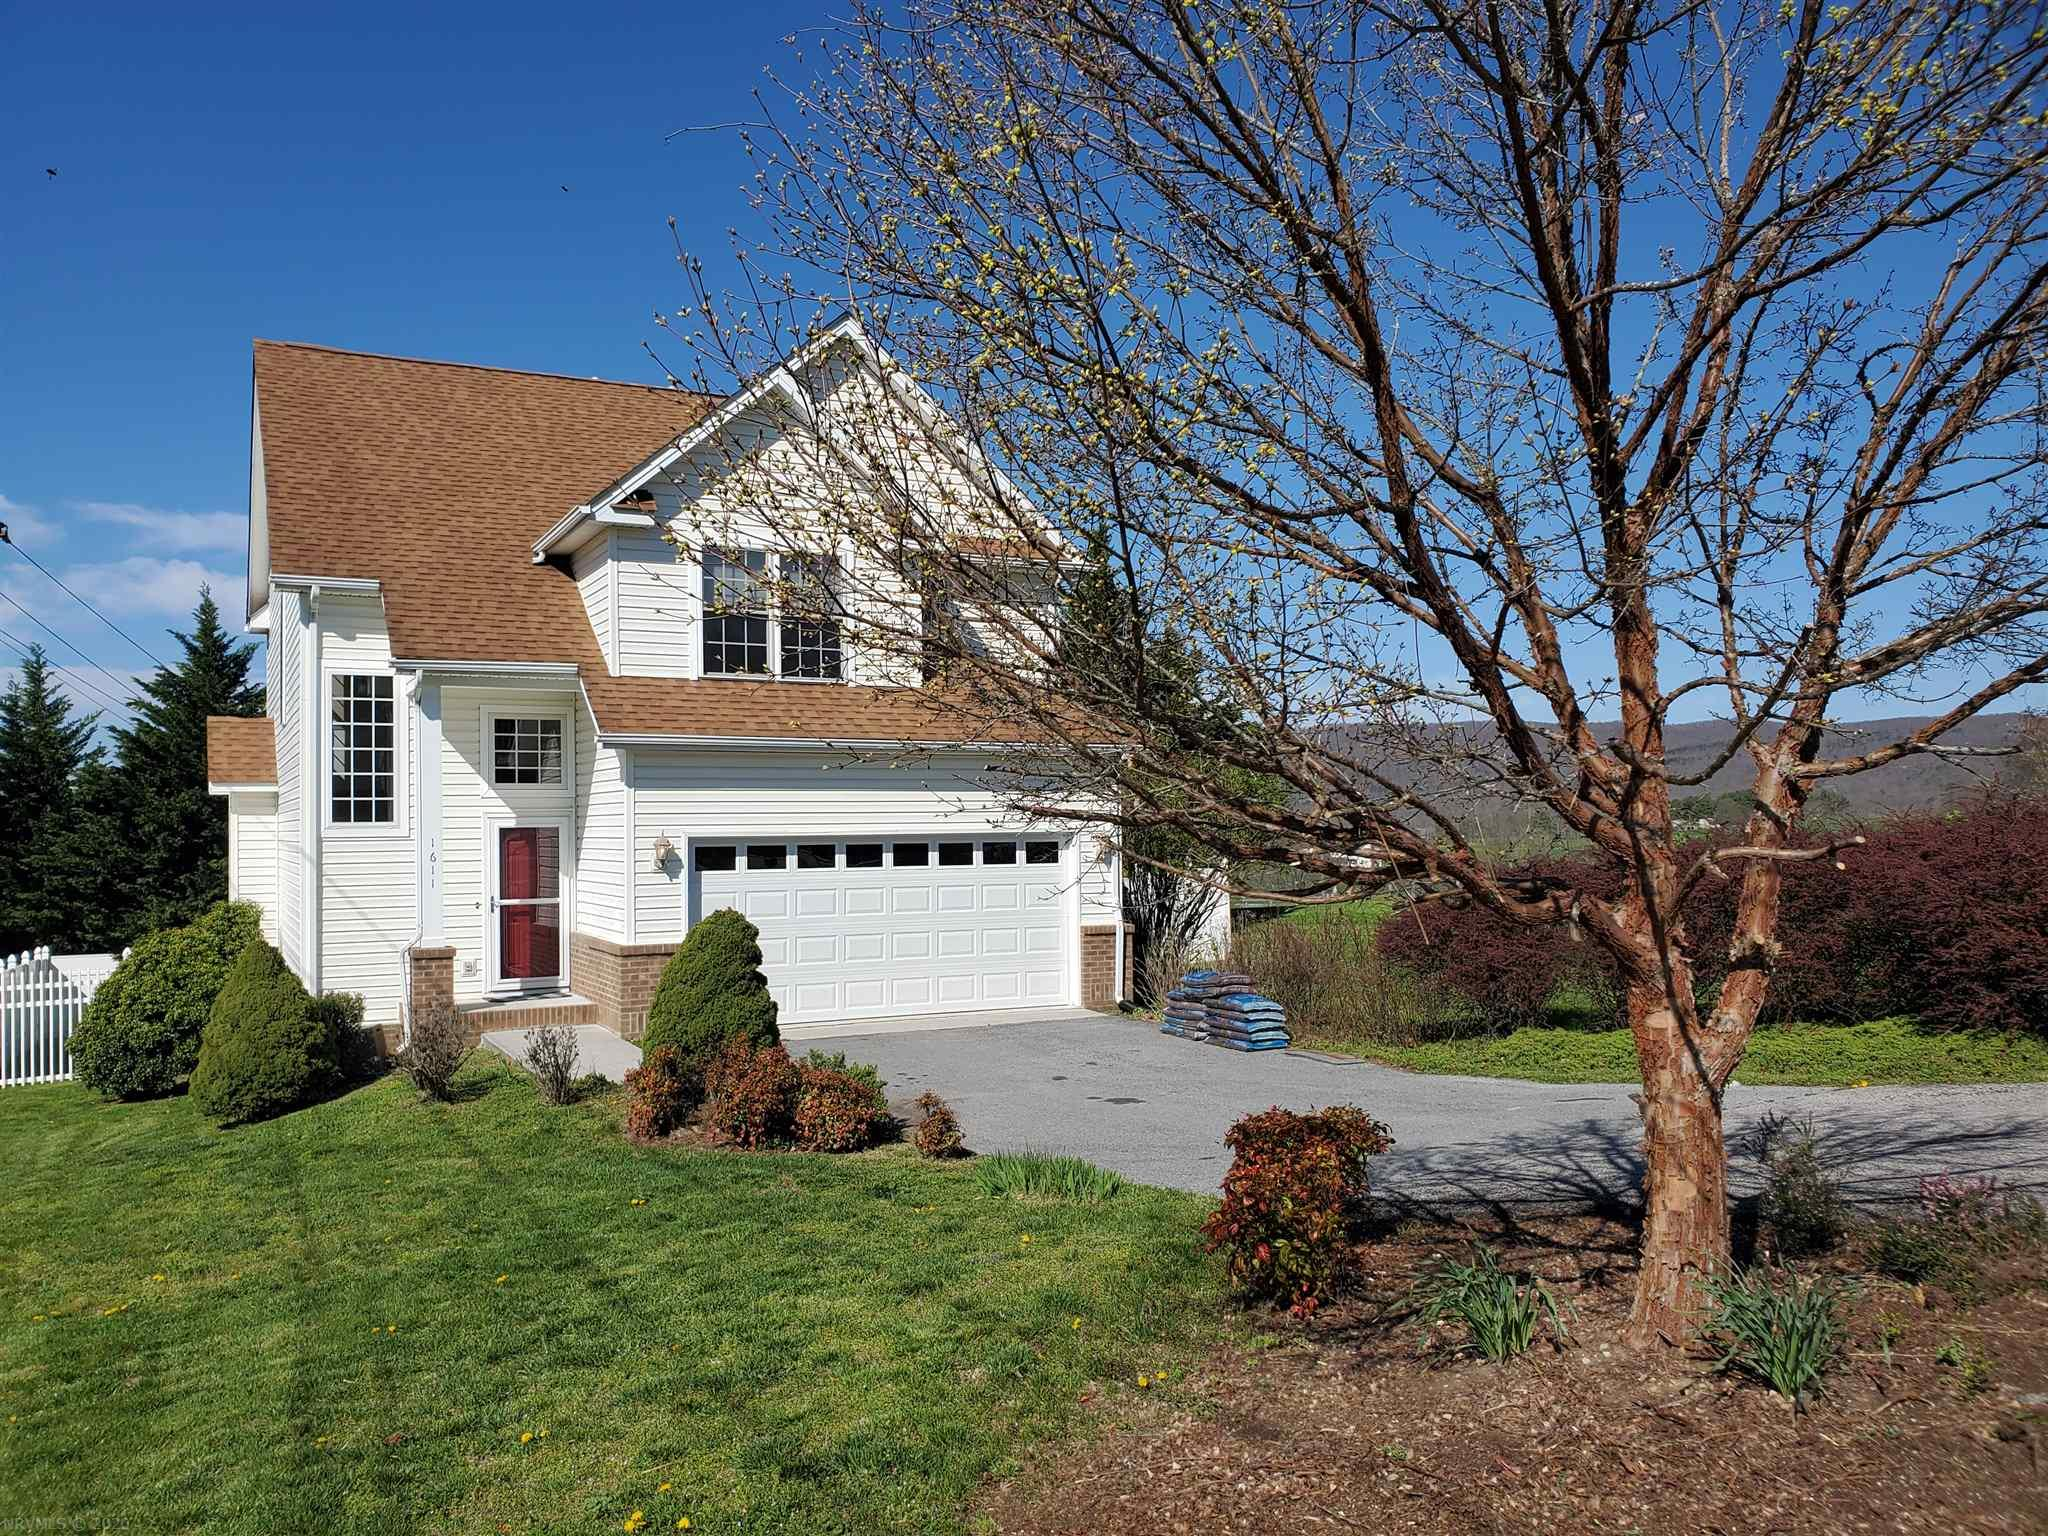 This Blacksburg Beauty Won't Last Long! Contemporary Home with Open Concept Living, Dining, and Kitchen ~ Main Level includes Fireplace in Living Area, Kitchen, Half Bath, Screened Porch, and Deck with Bench Seating Leading to a Refreshing In-Ground Pool. 3 Bedrooms, 2 Full Baths, and Laundry Room on Upper. Convenient Location and Move In Ready!